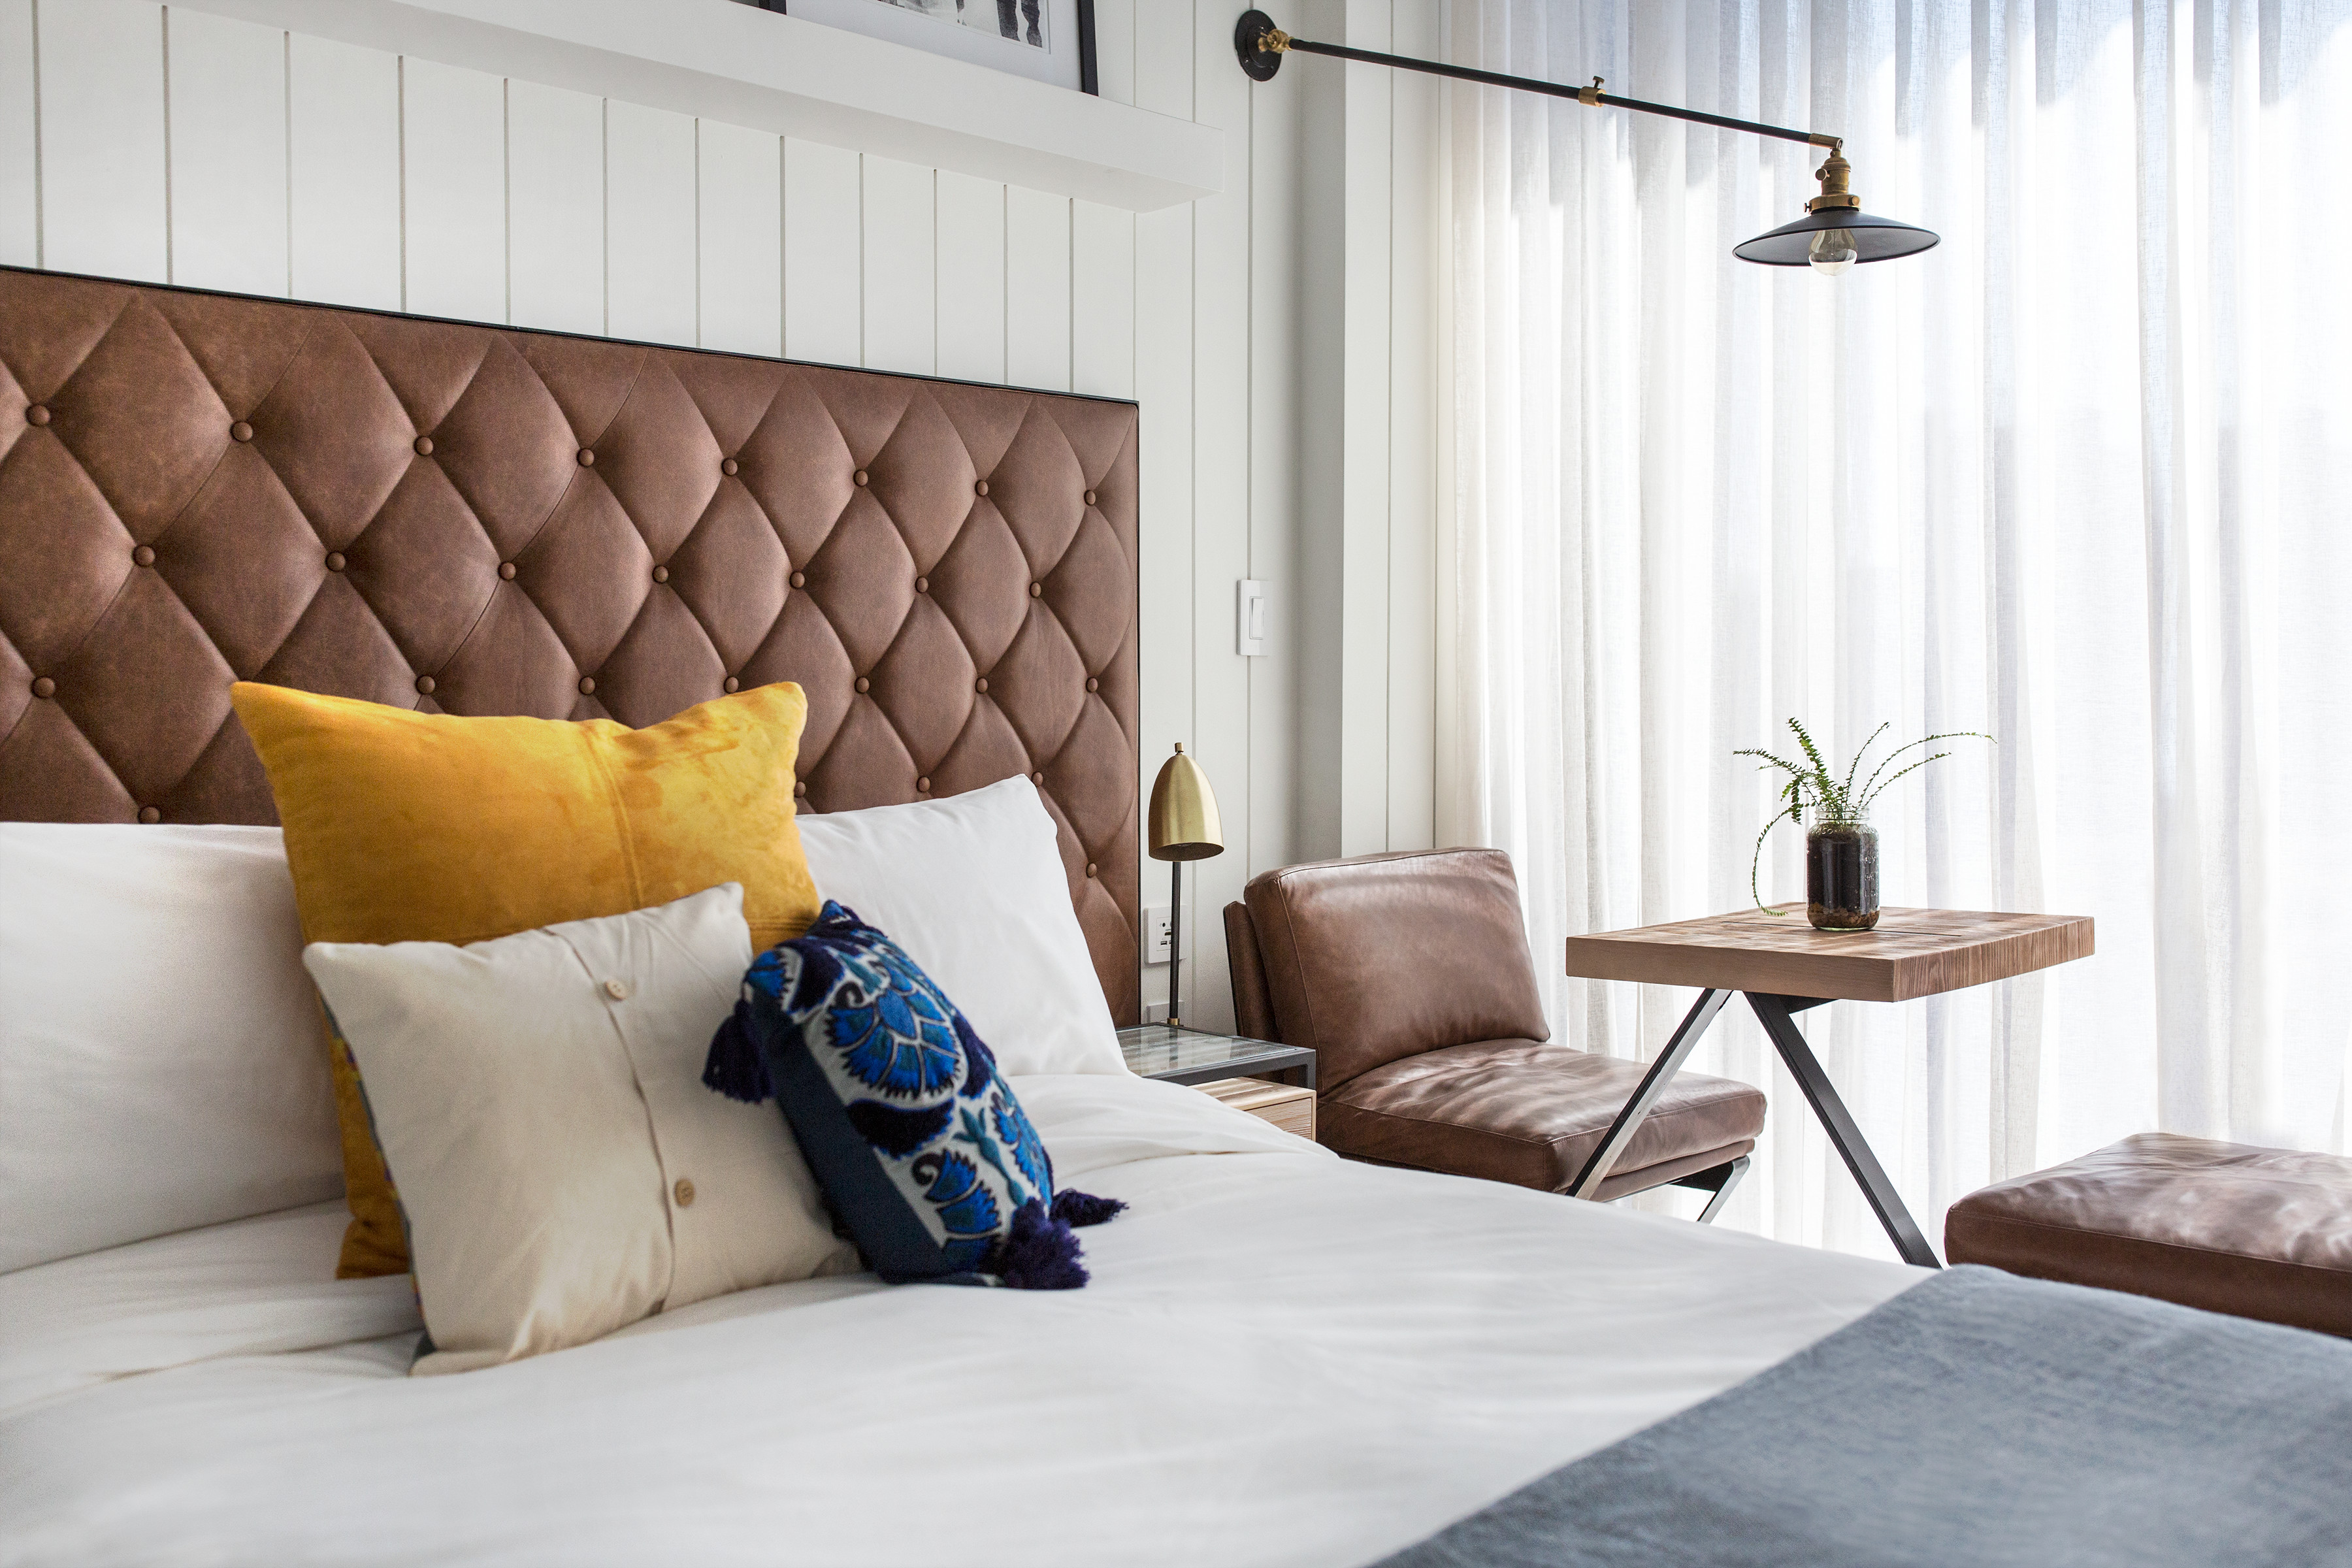 williamsburg's newest hotel is now open - curbed ny